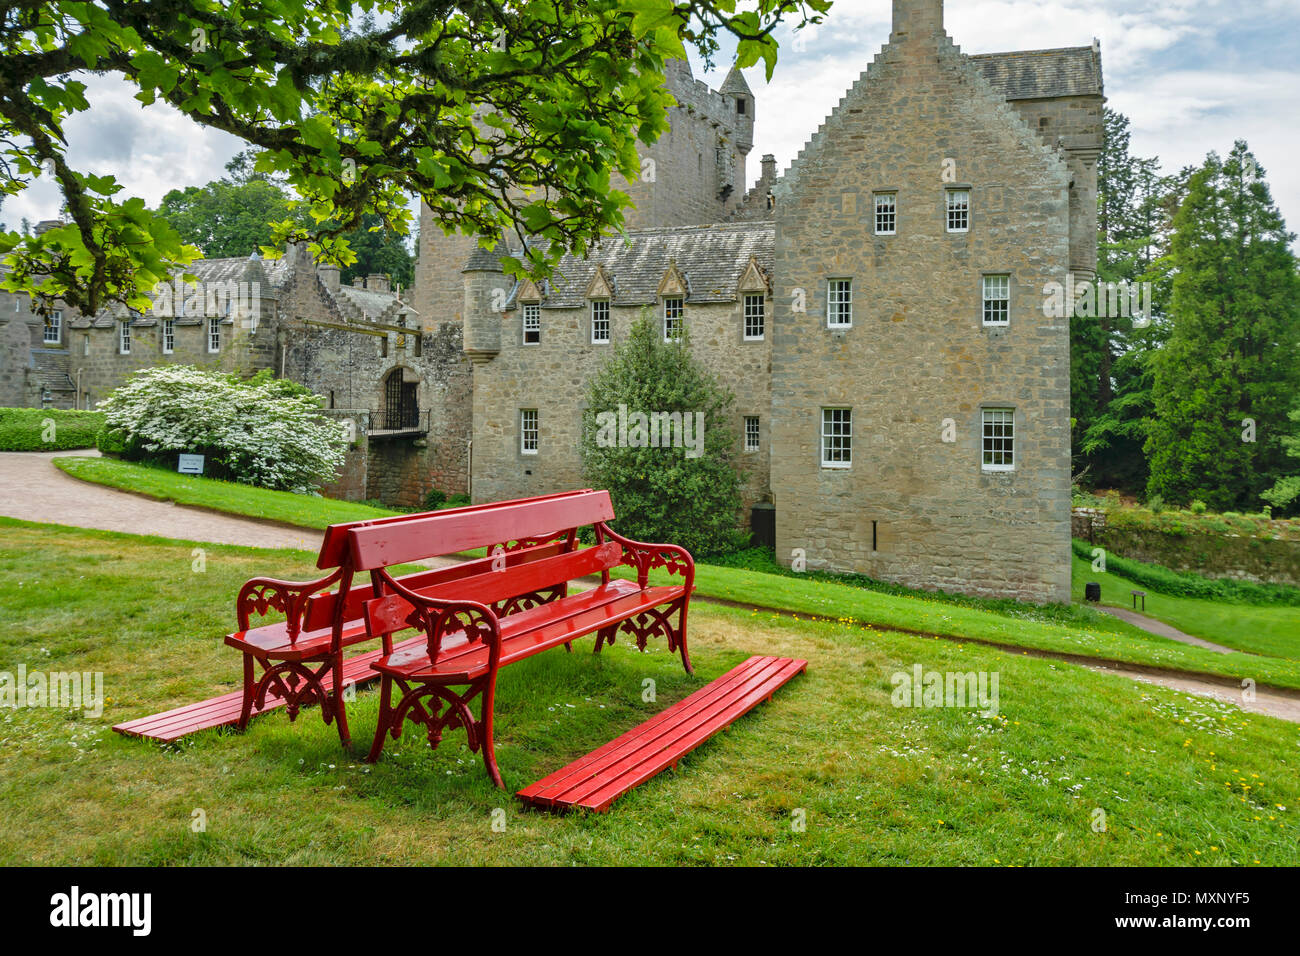 CAWDOR CASTLE NAIRN SCOTLAND RED BENCH UNDER A TREE IN FRONT OF THE BUILDING - Stock Image